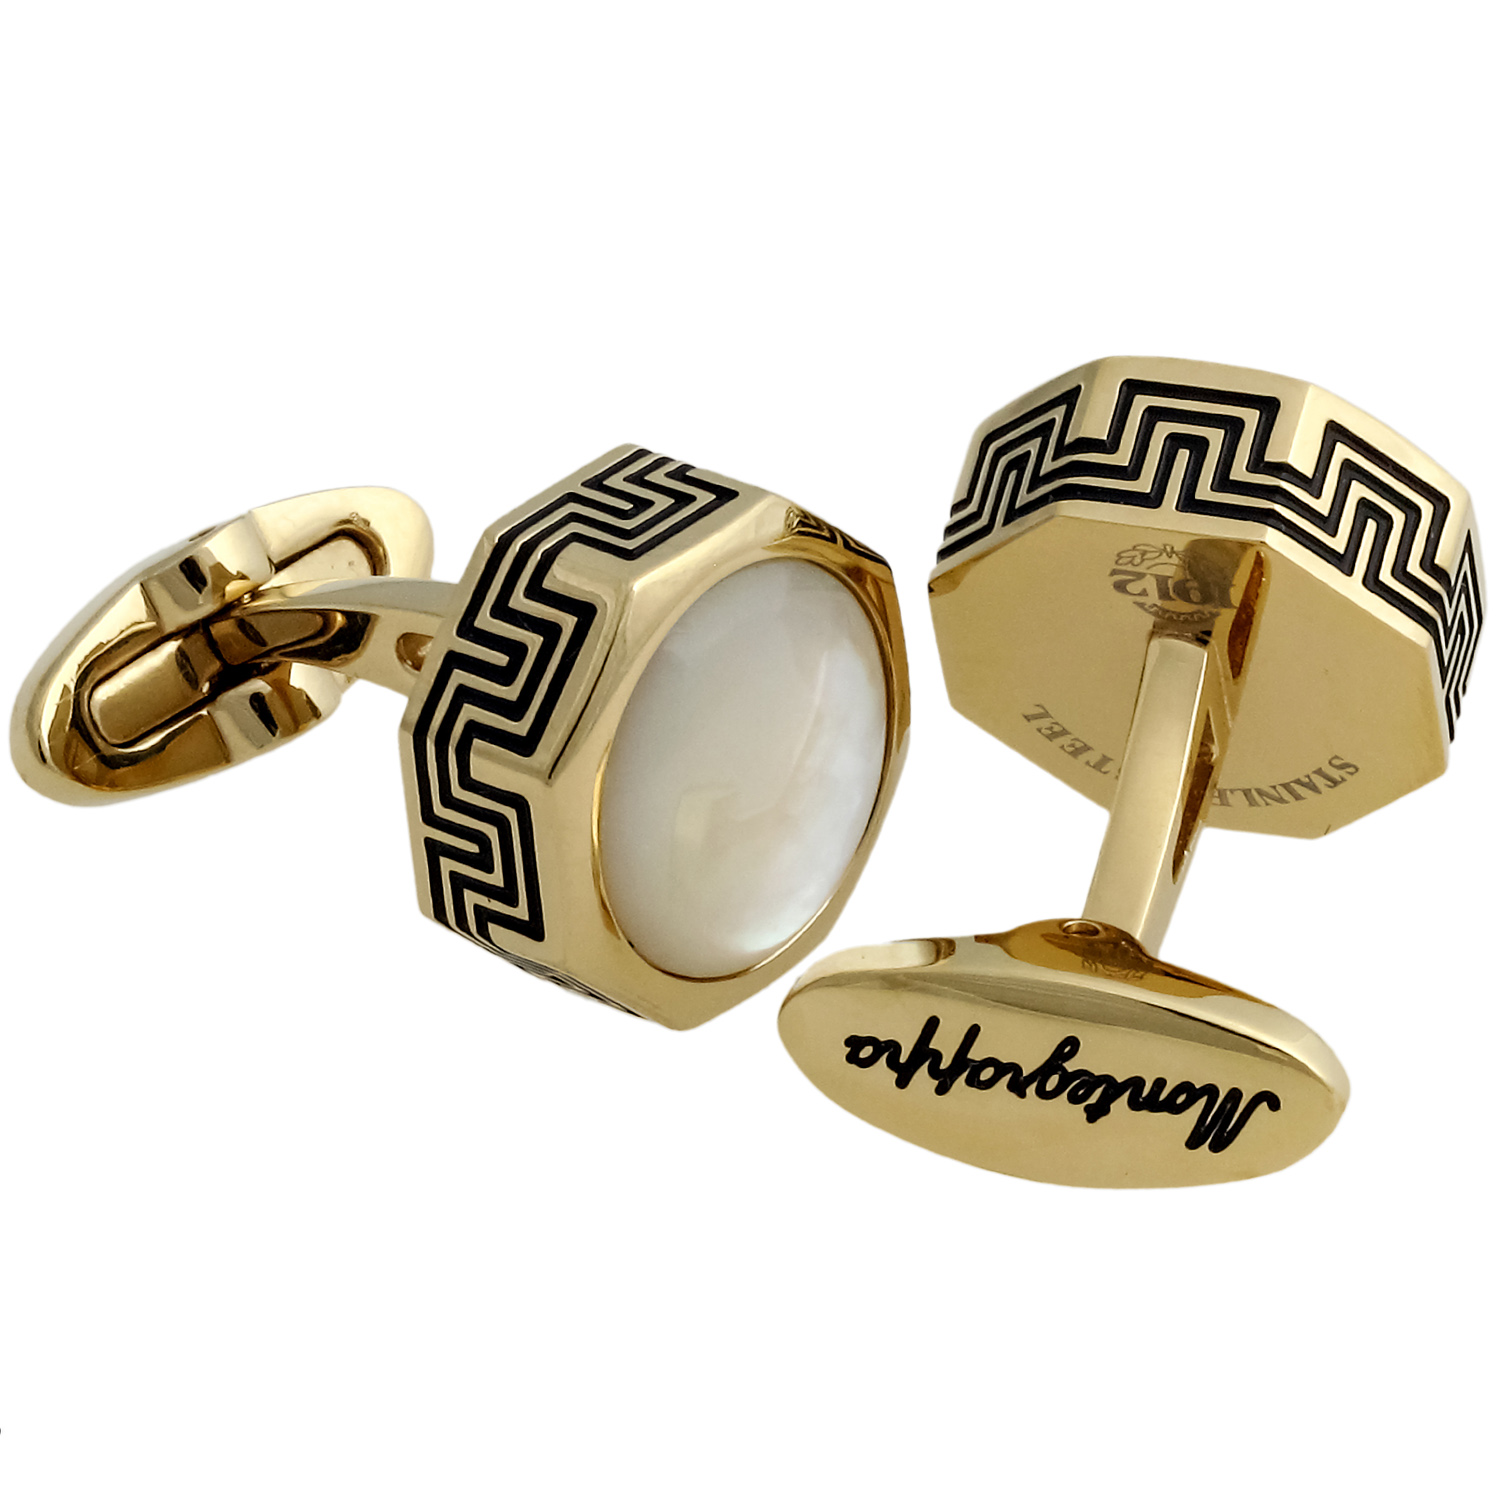 Privilege Yellow Gold PVD Plated Brass & Mother of Pearl Cufflinks IDPLCLI4